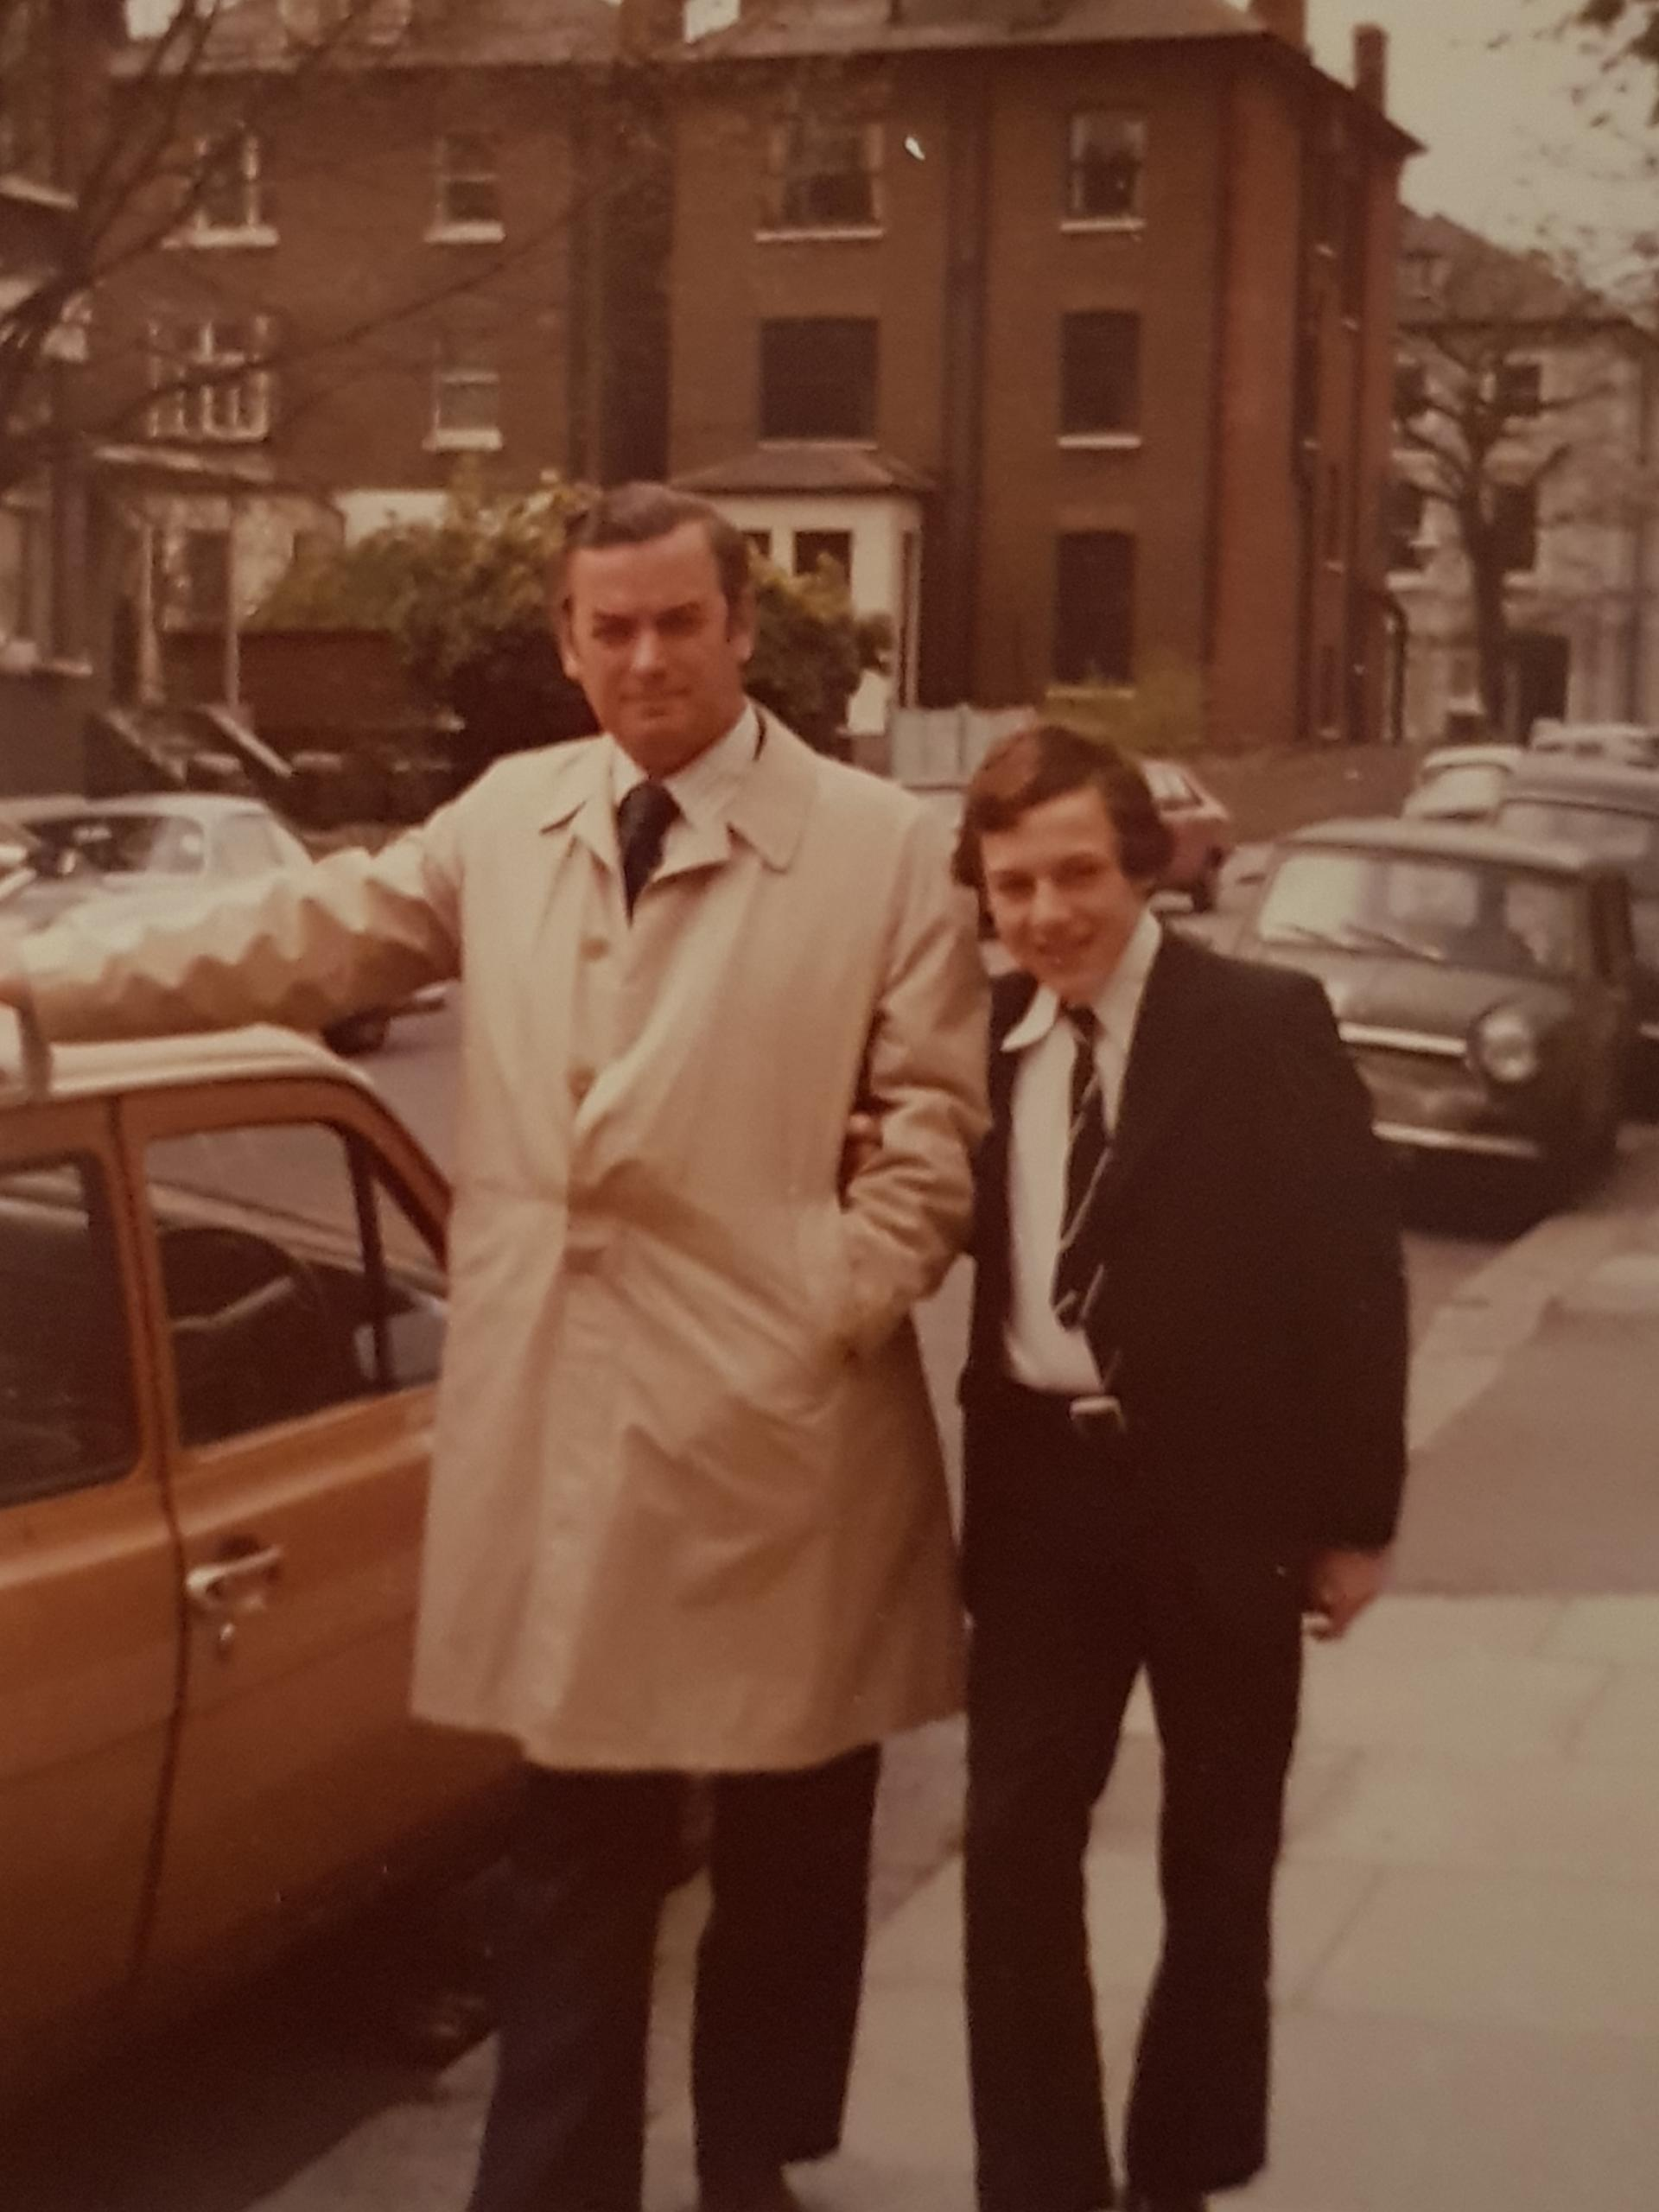 Phillip and his dad outside his grandmother's house in Swiss Cottage London, 1977.